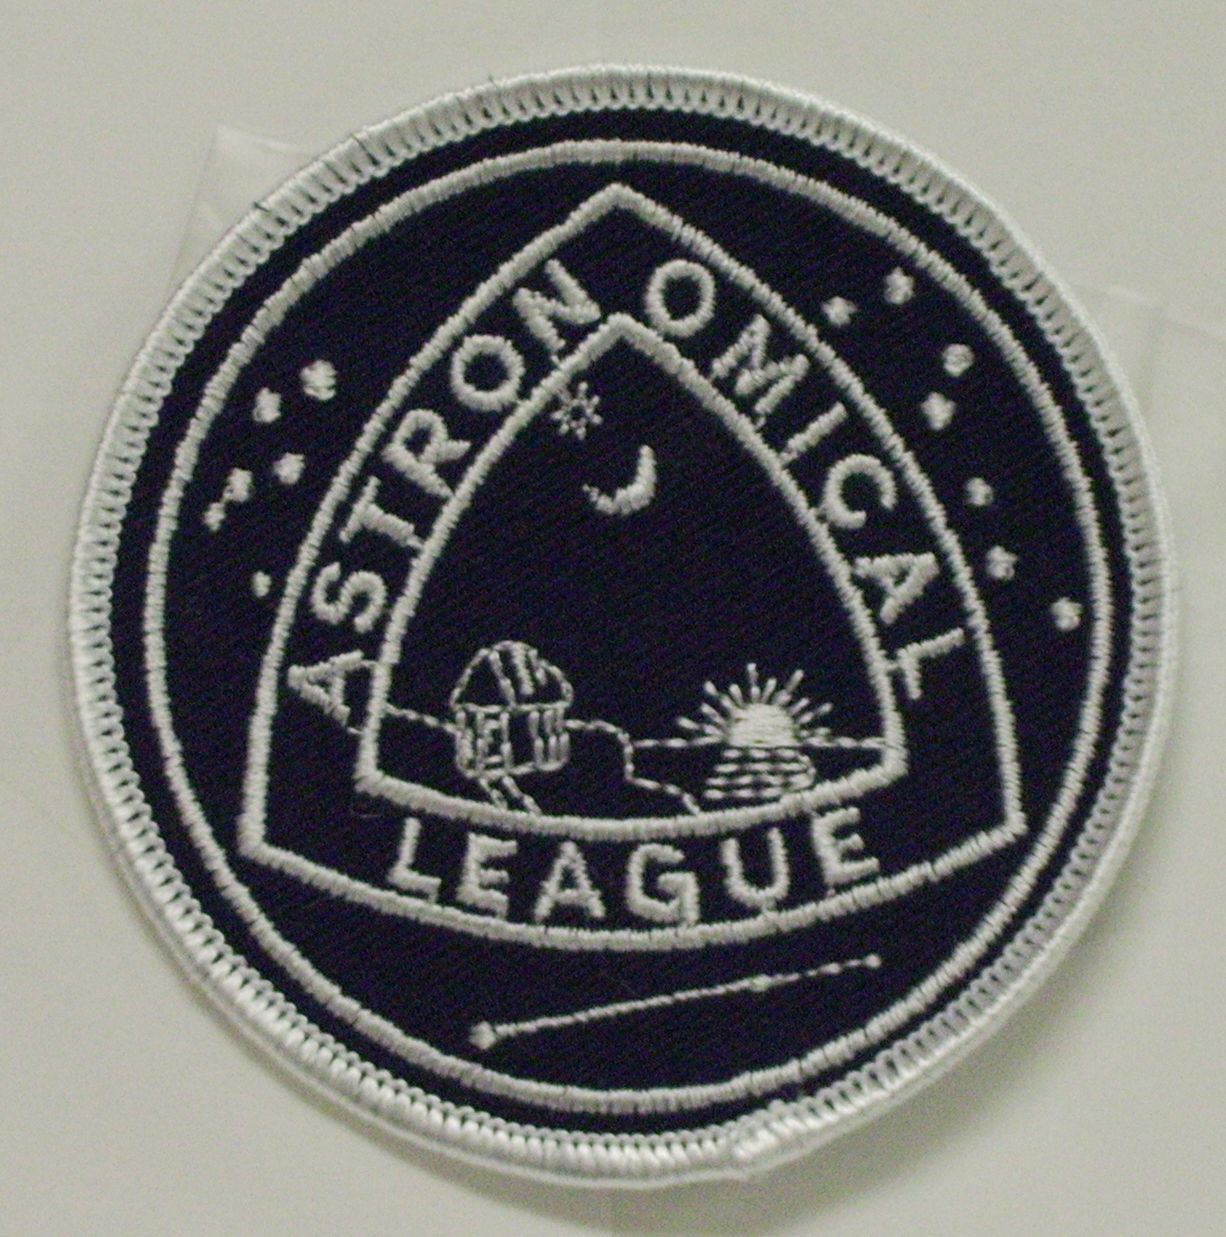 Astronomical League Cloth Patch - blue & white